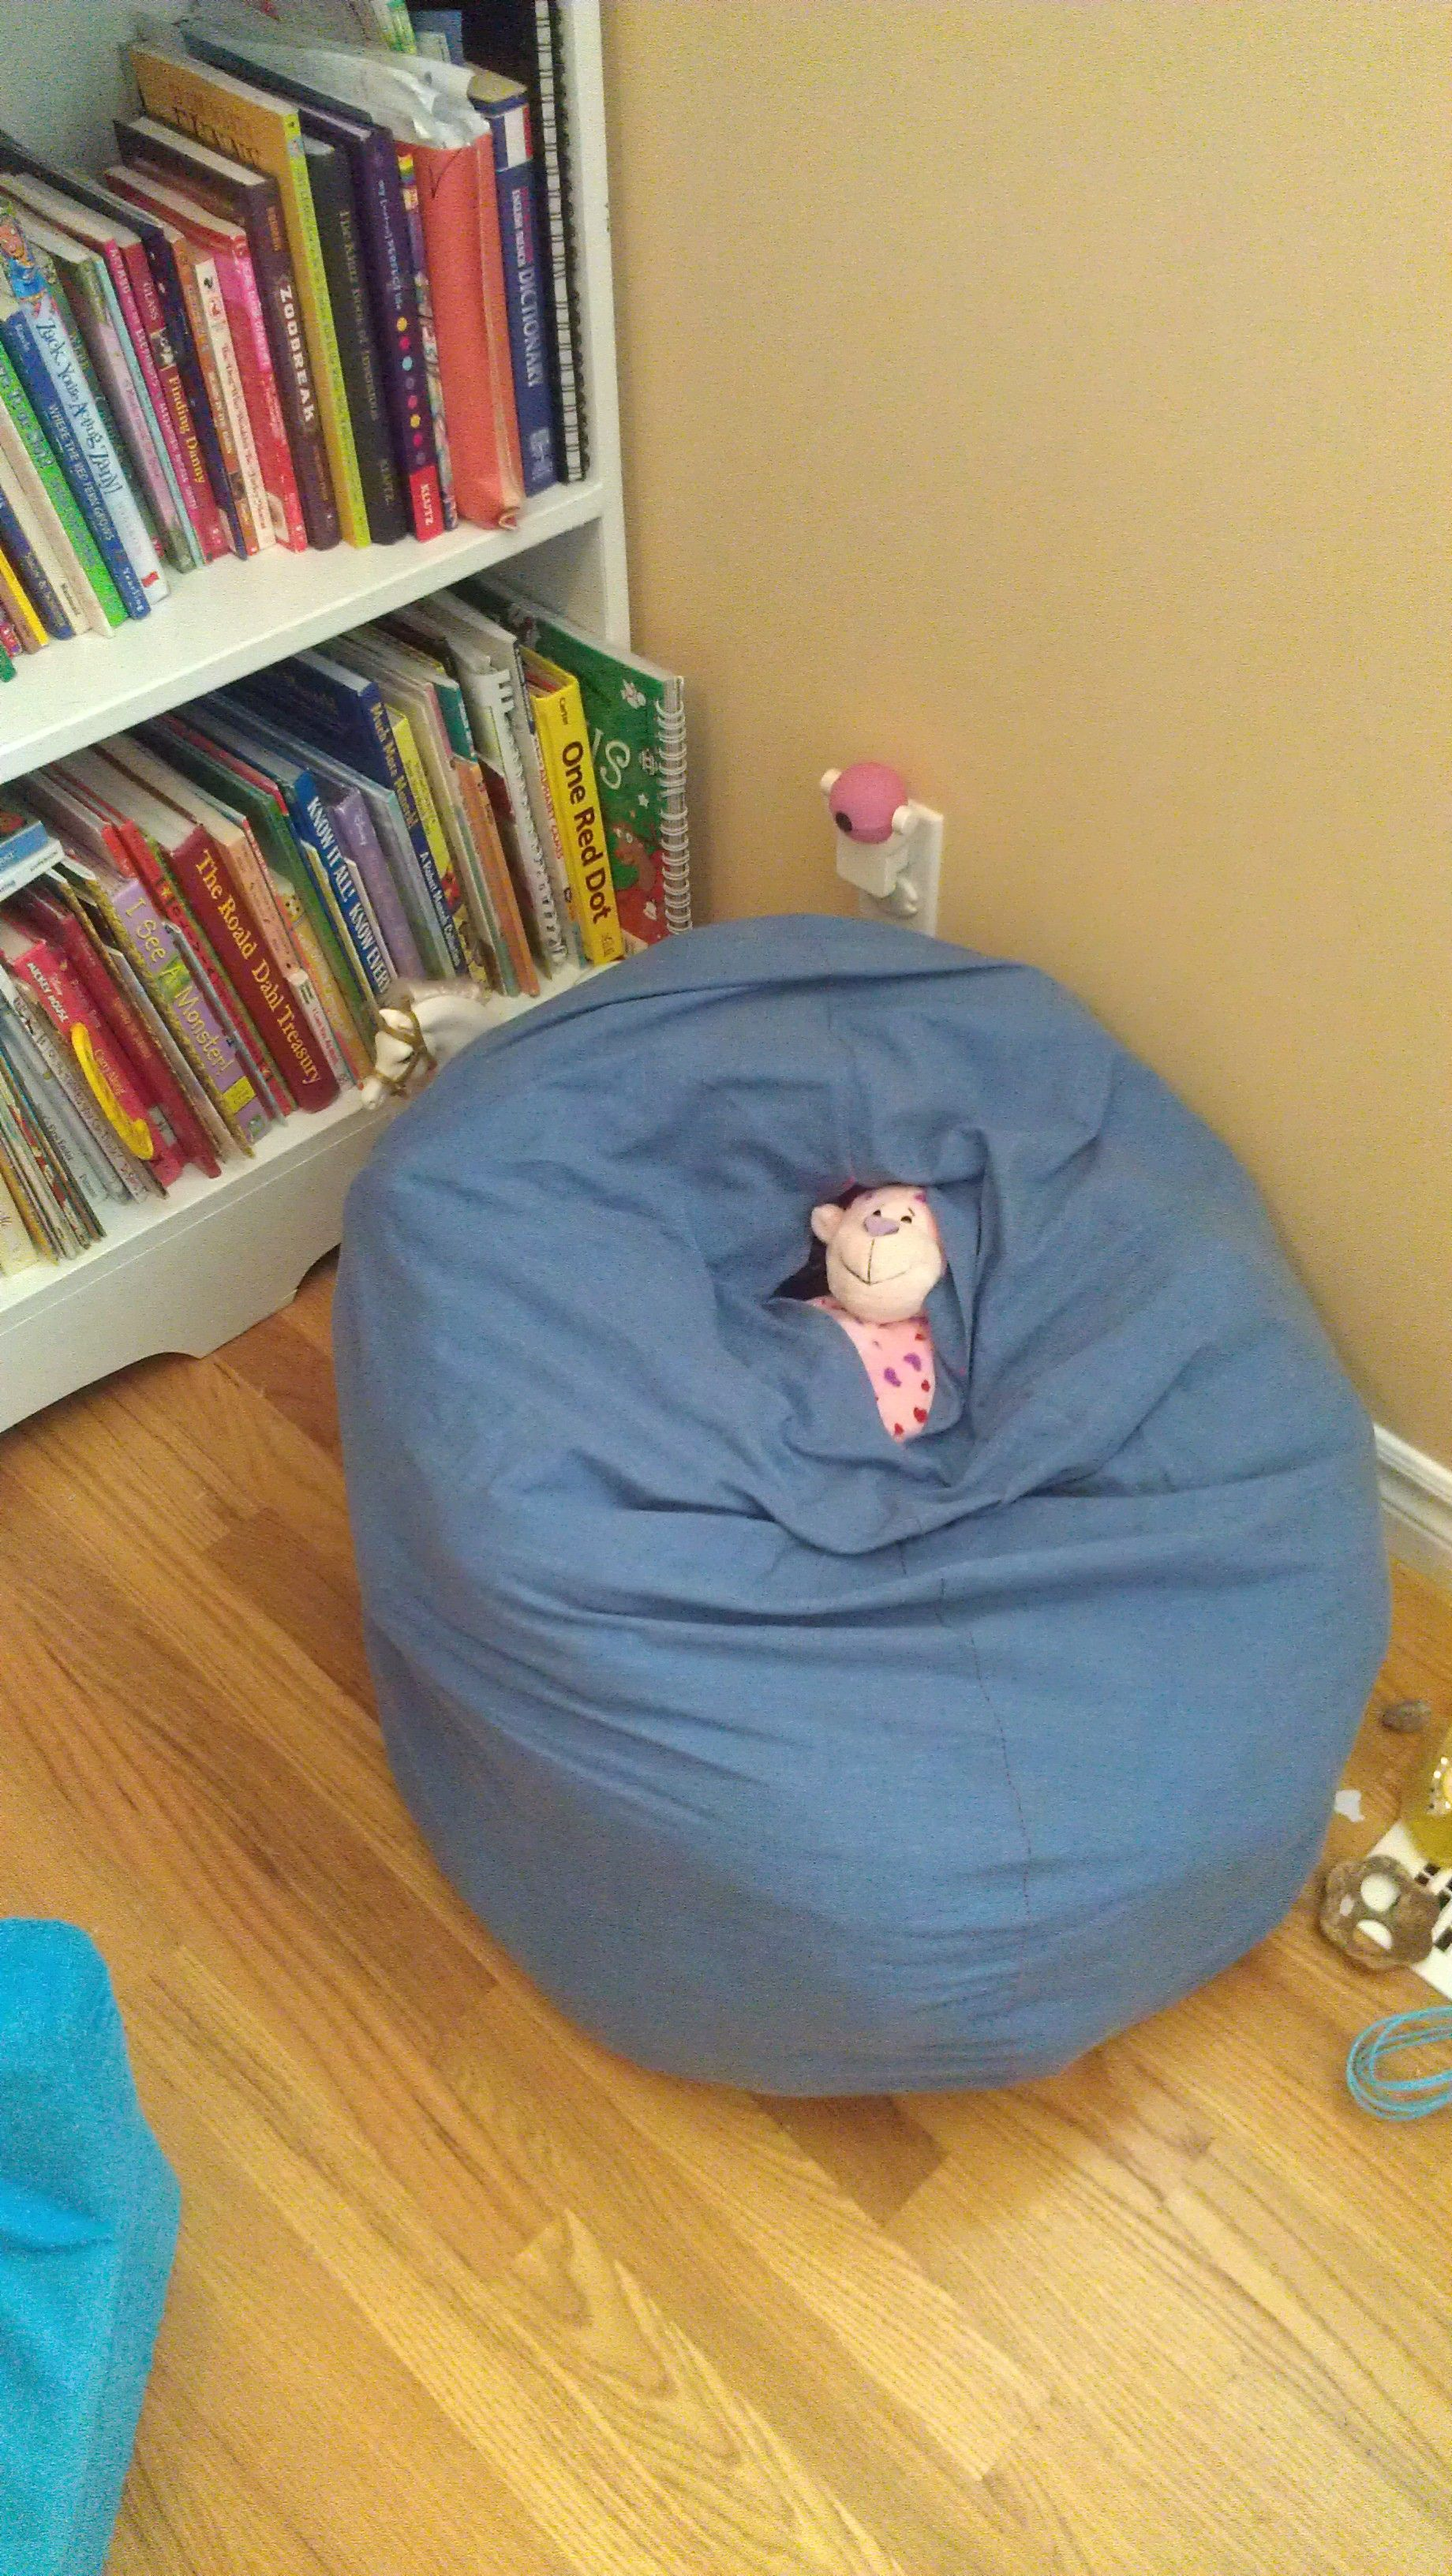 Made A Beanbag Chair Out Of An Old Sheet Filled It With Stuffed Animals